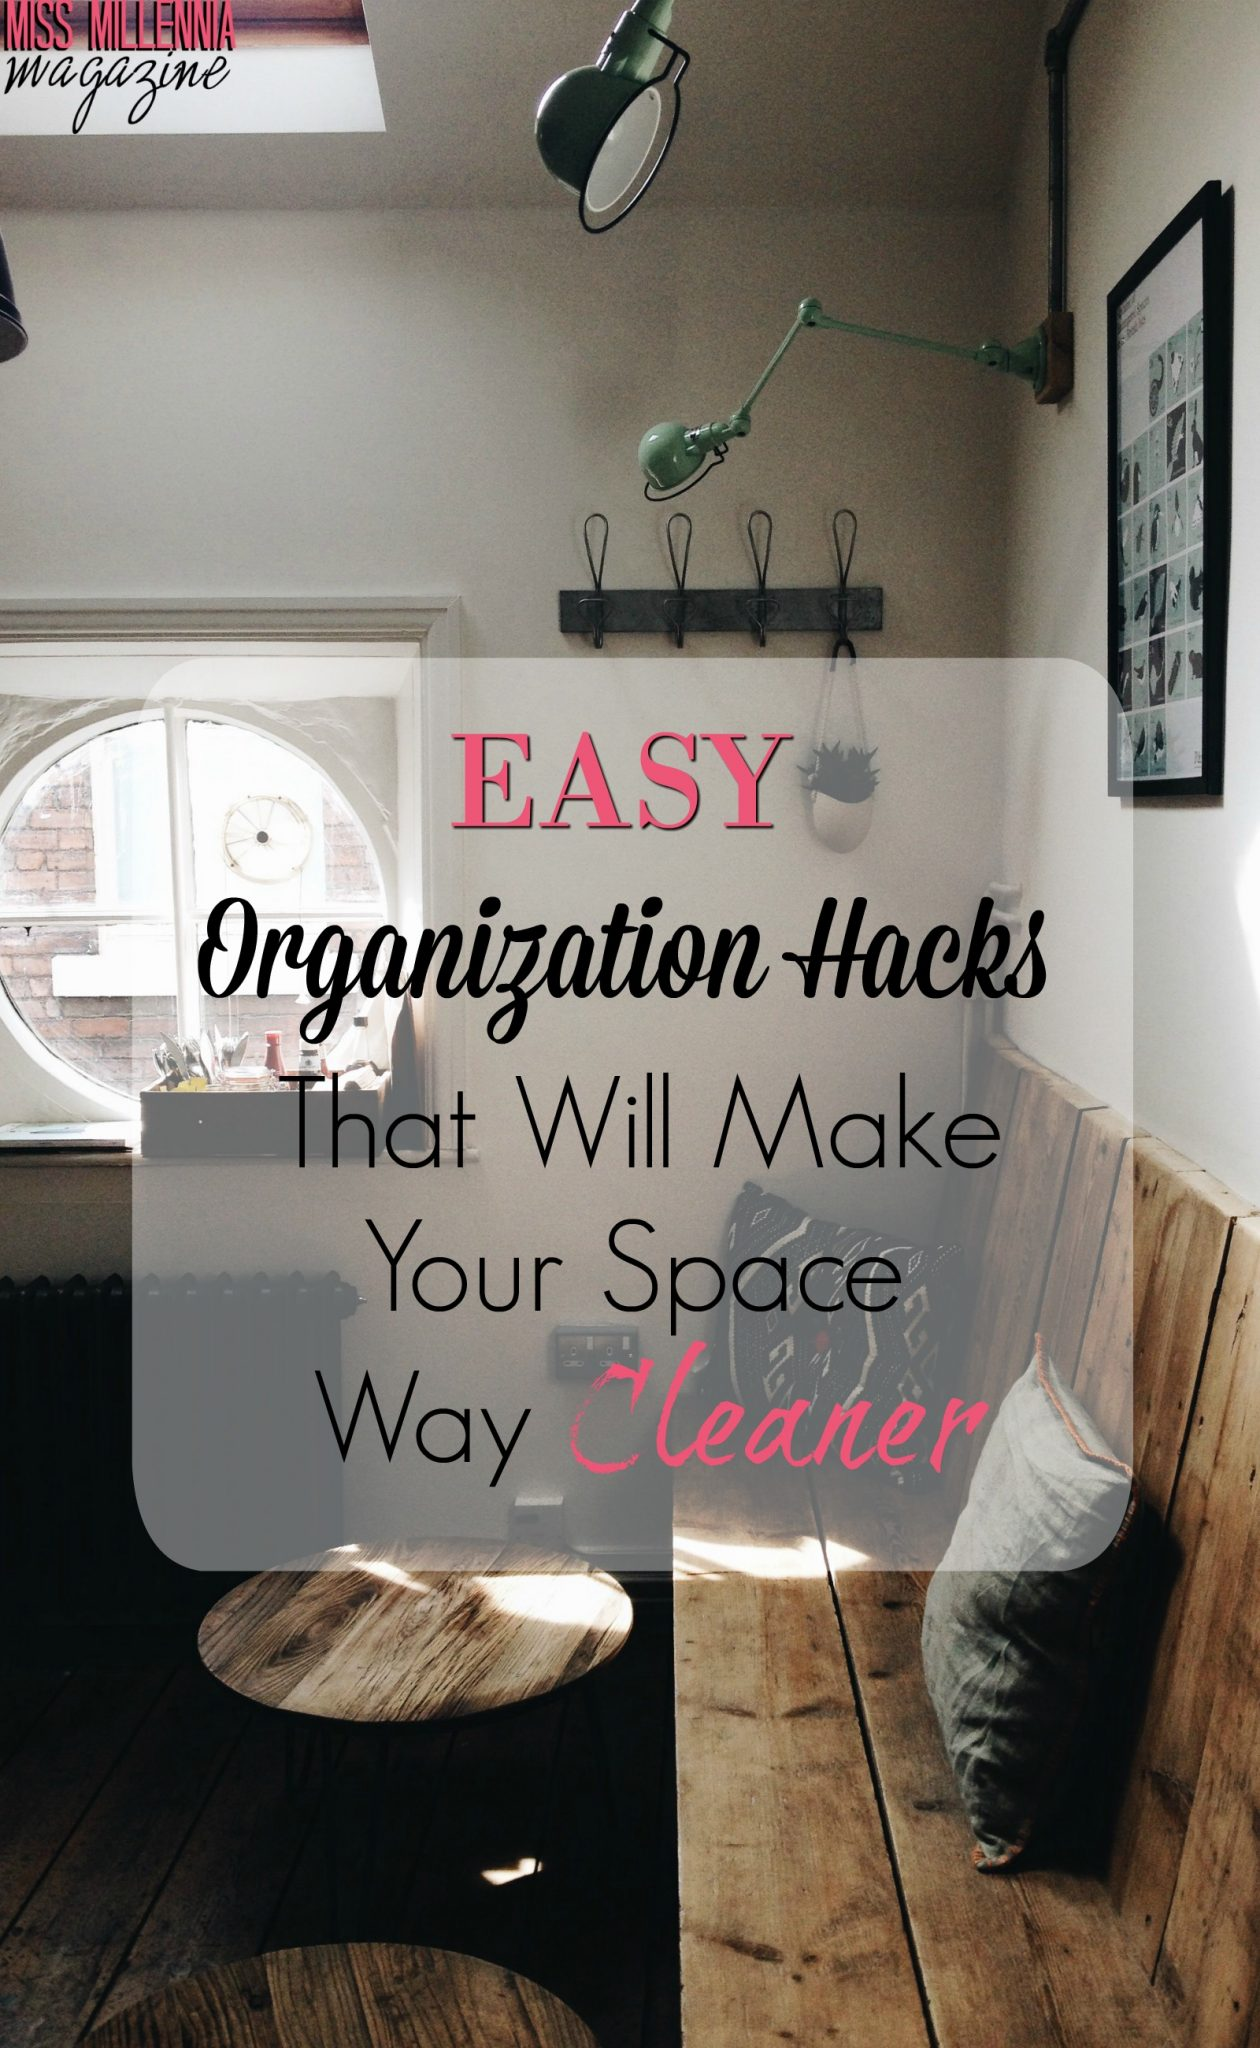 Easy Organization Hacks That Will Make Your Space Way Cleaner